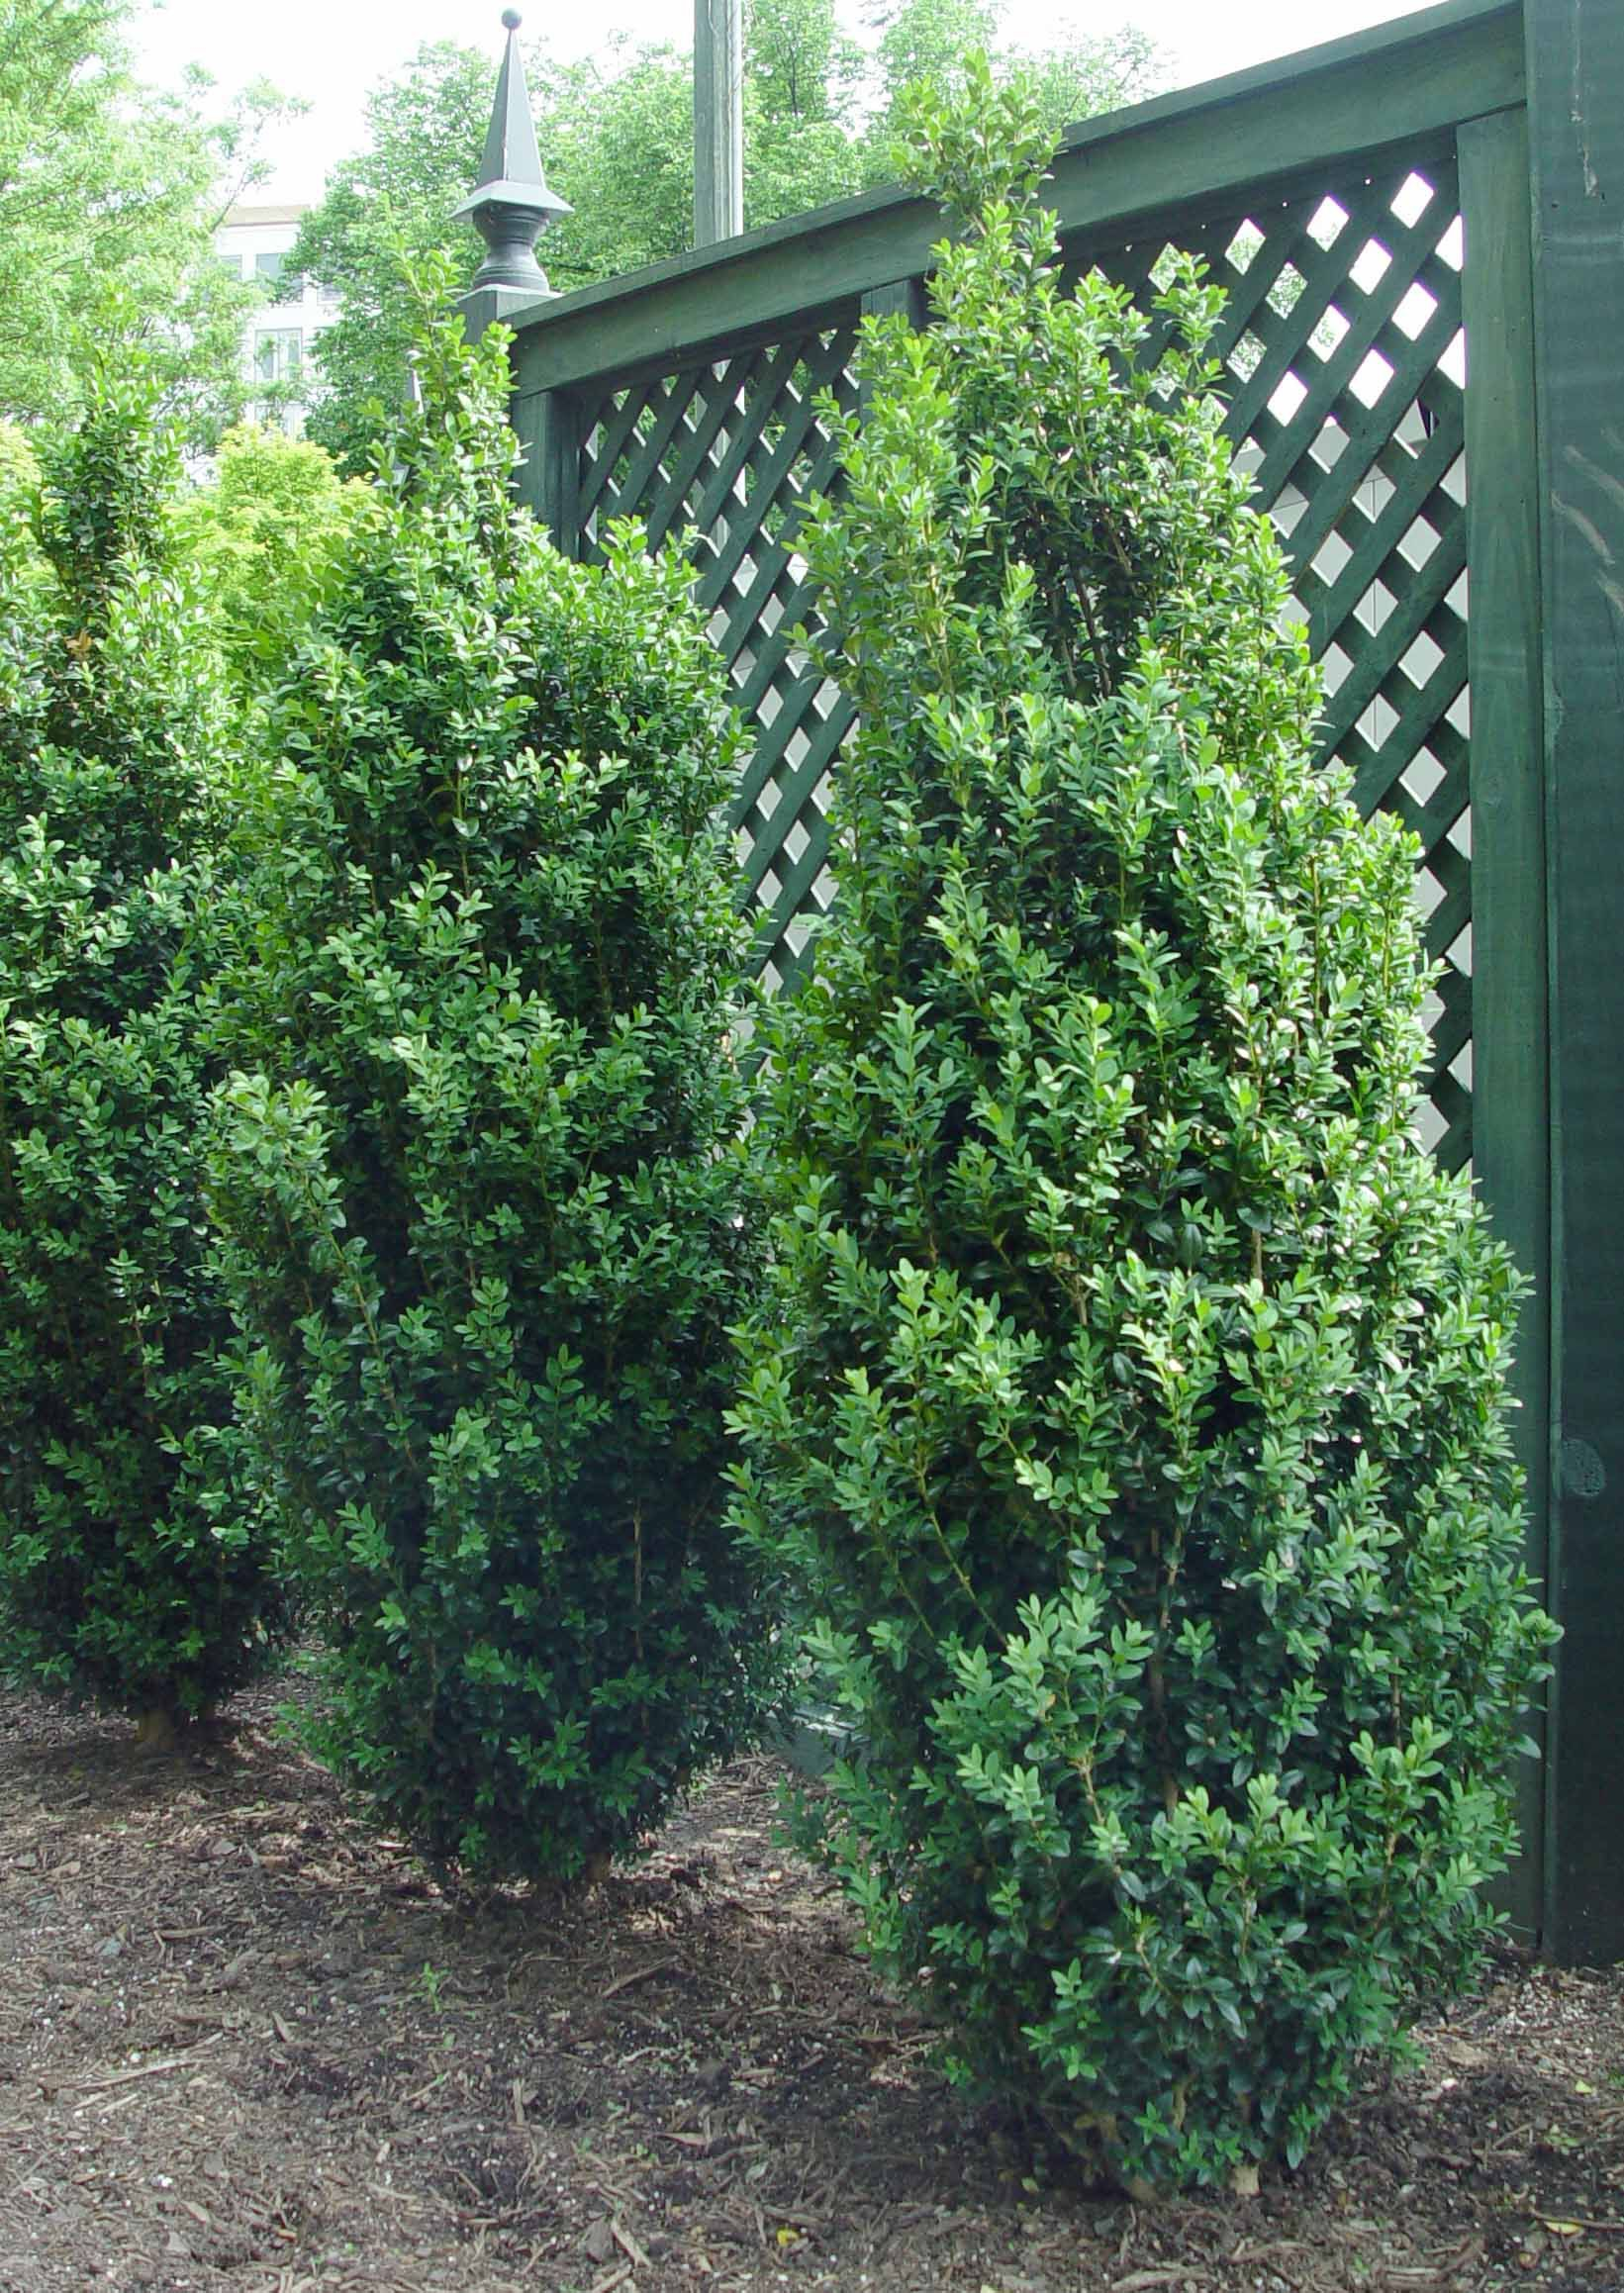 dee runk boxwood 8 10 ft tall x 2 3 ft wide great for tight